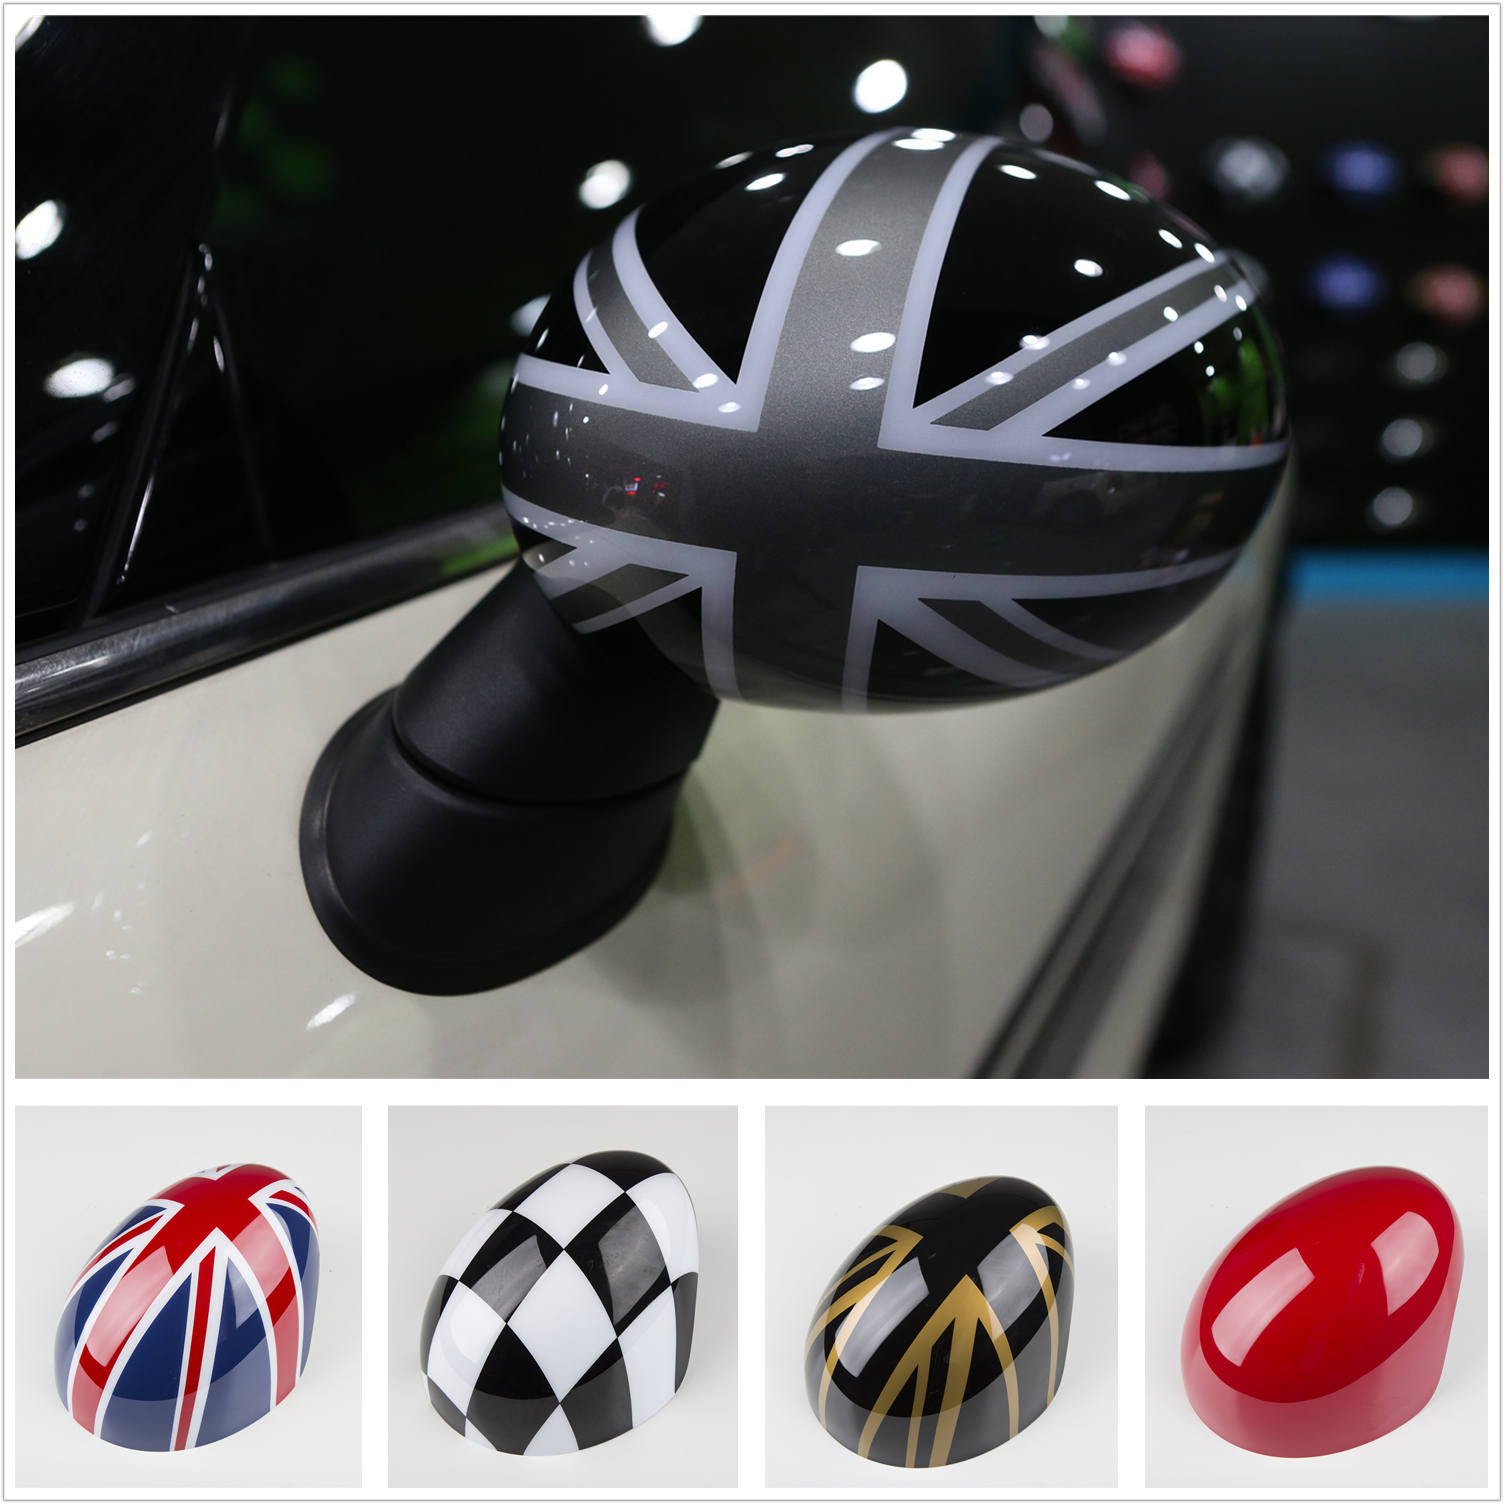 2pcs Side Wing Mirror Cover Cap Trim For Mini Cooper R Series R50 R53 R52 2000-2008 Fashion Decoration Car Decal Accessories